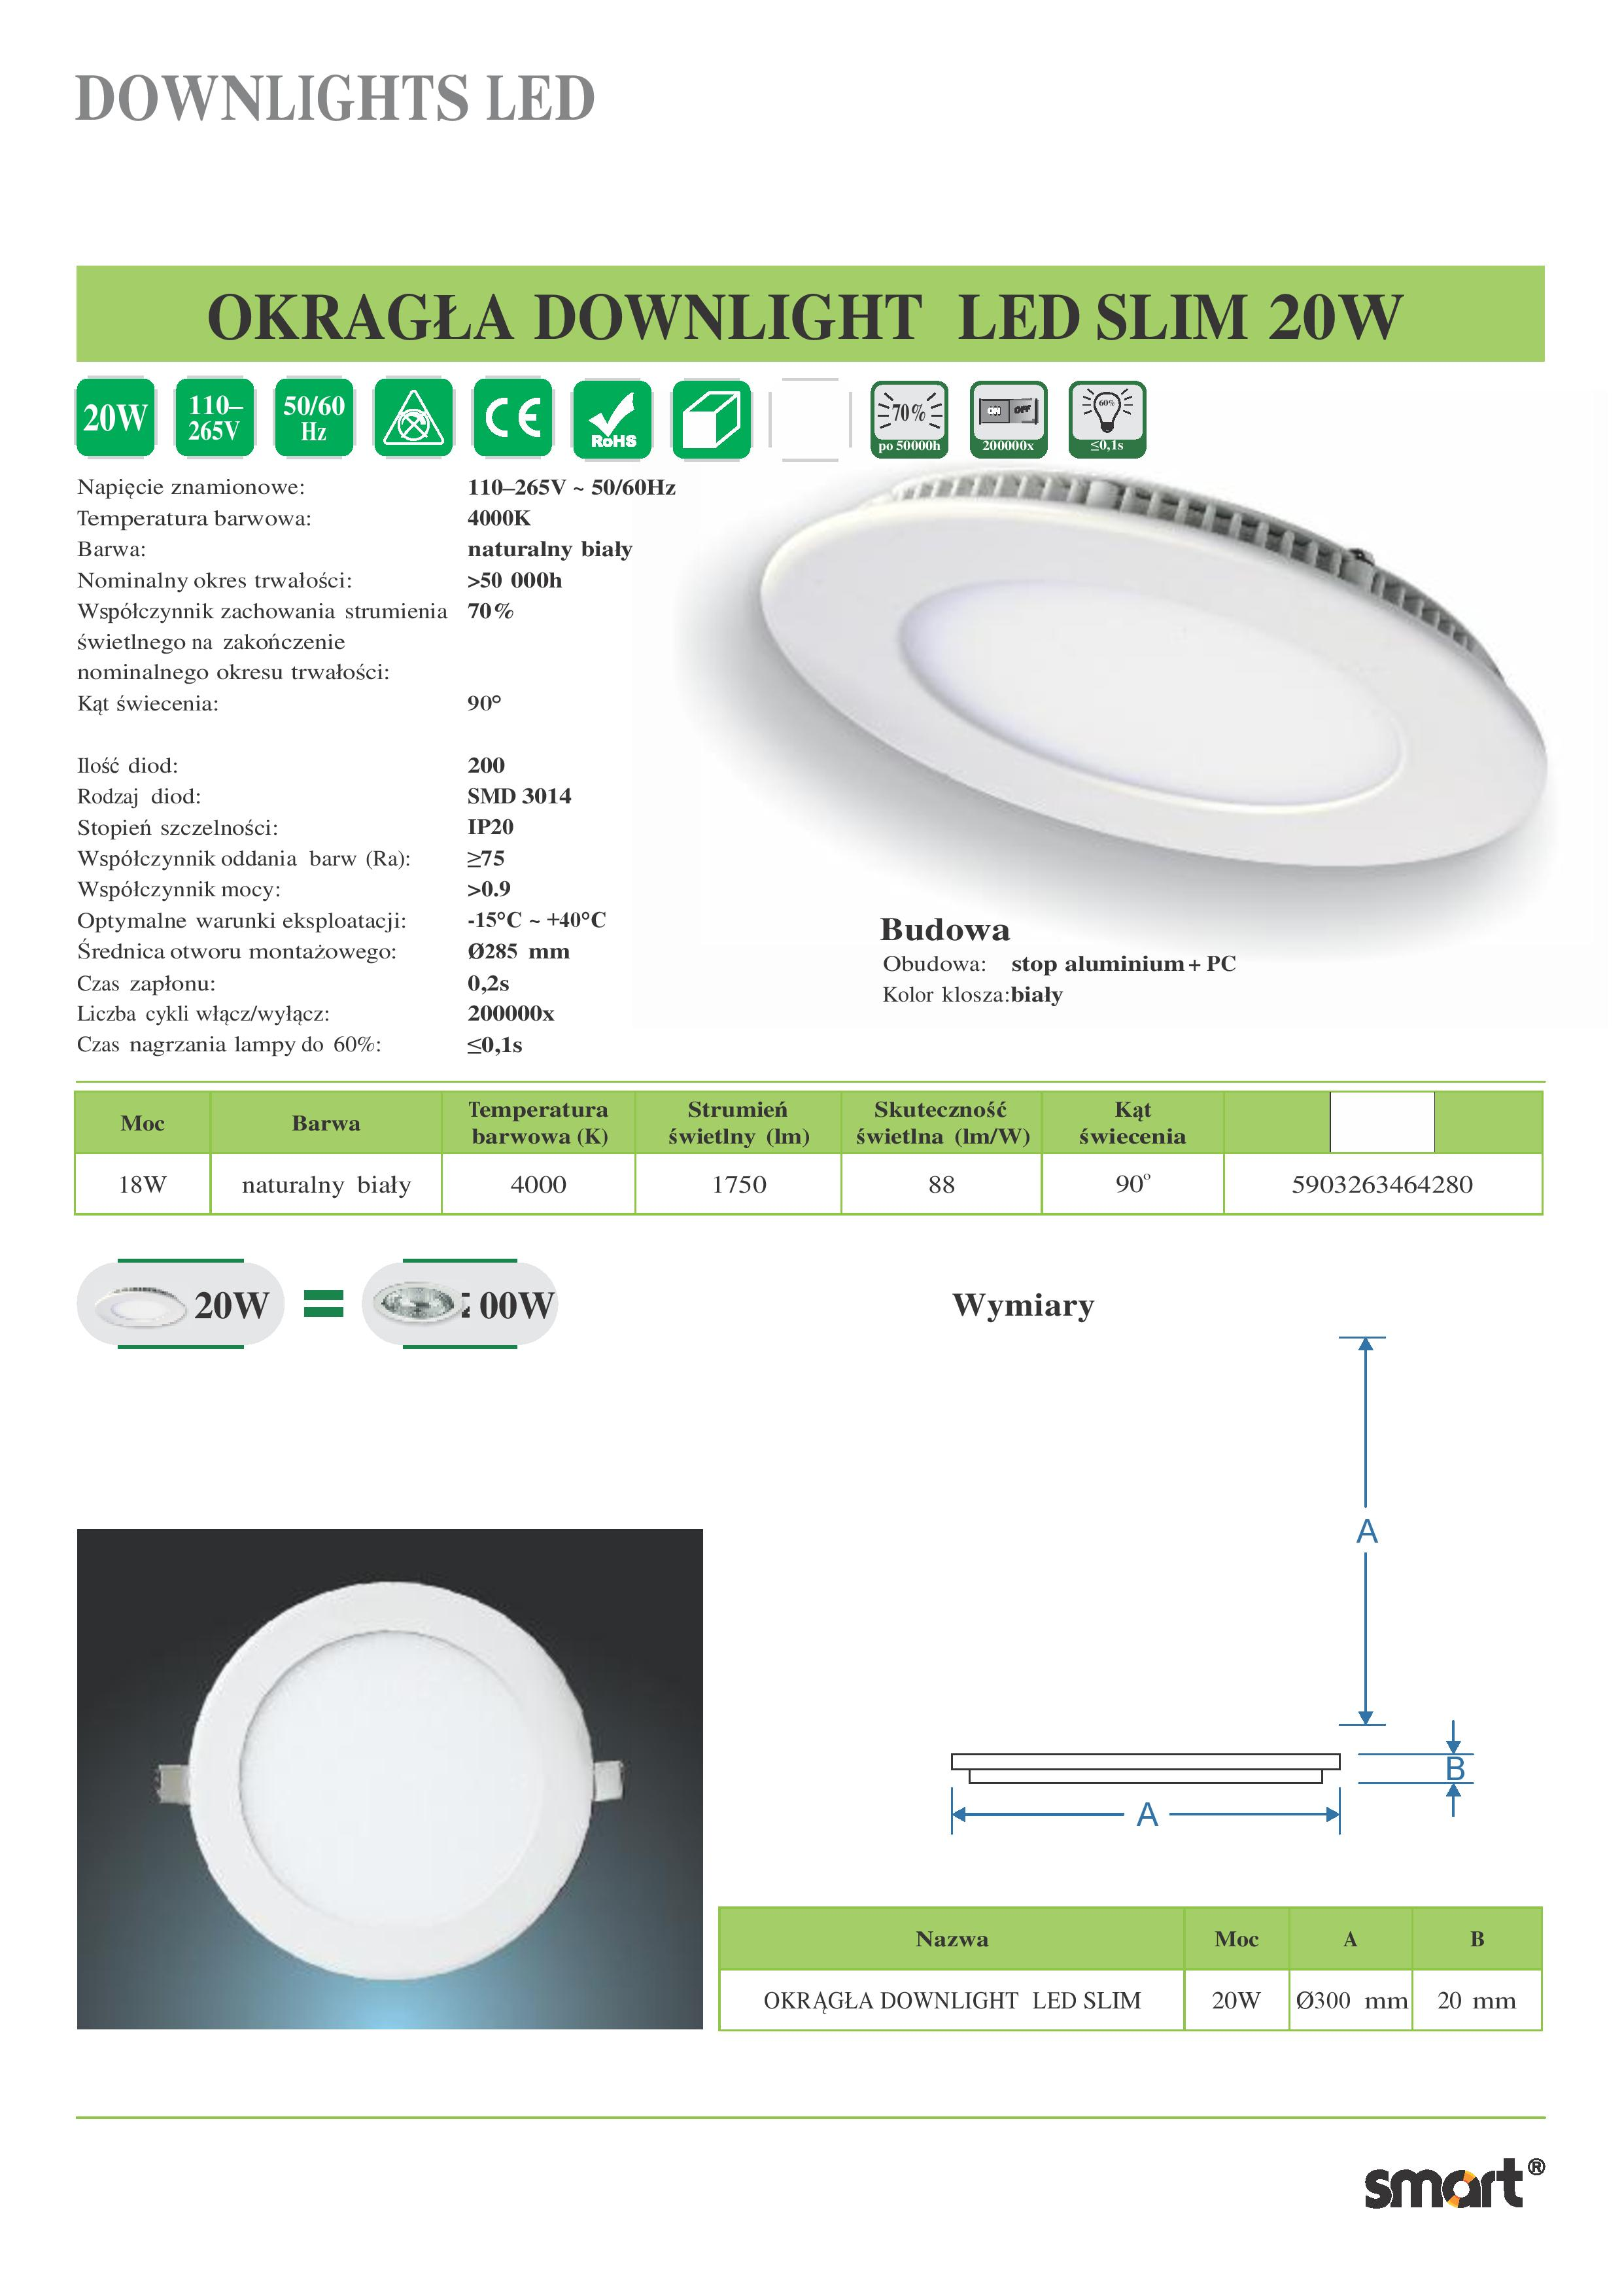 OKRAGLA-DOWNLIGHT-LED-SLIM-20W